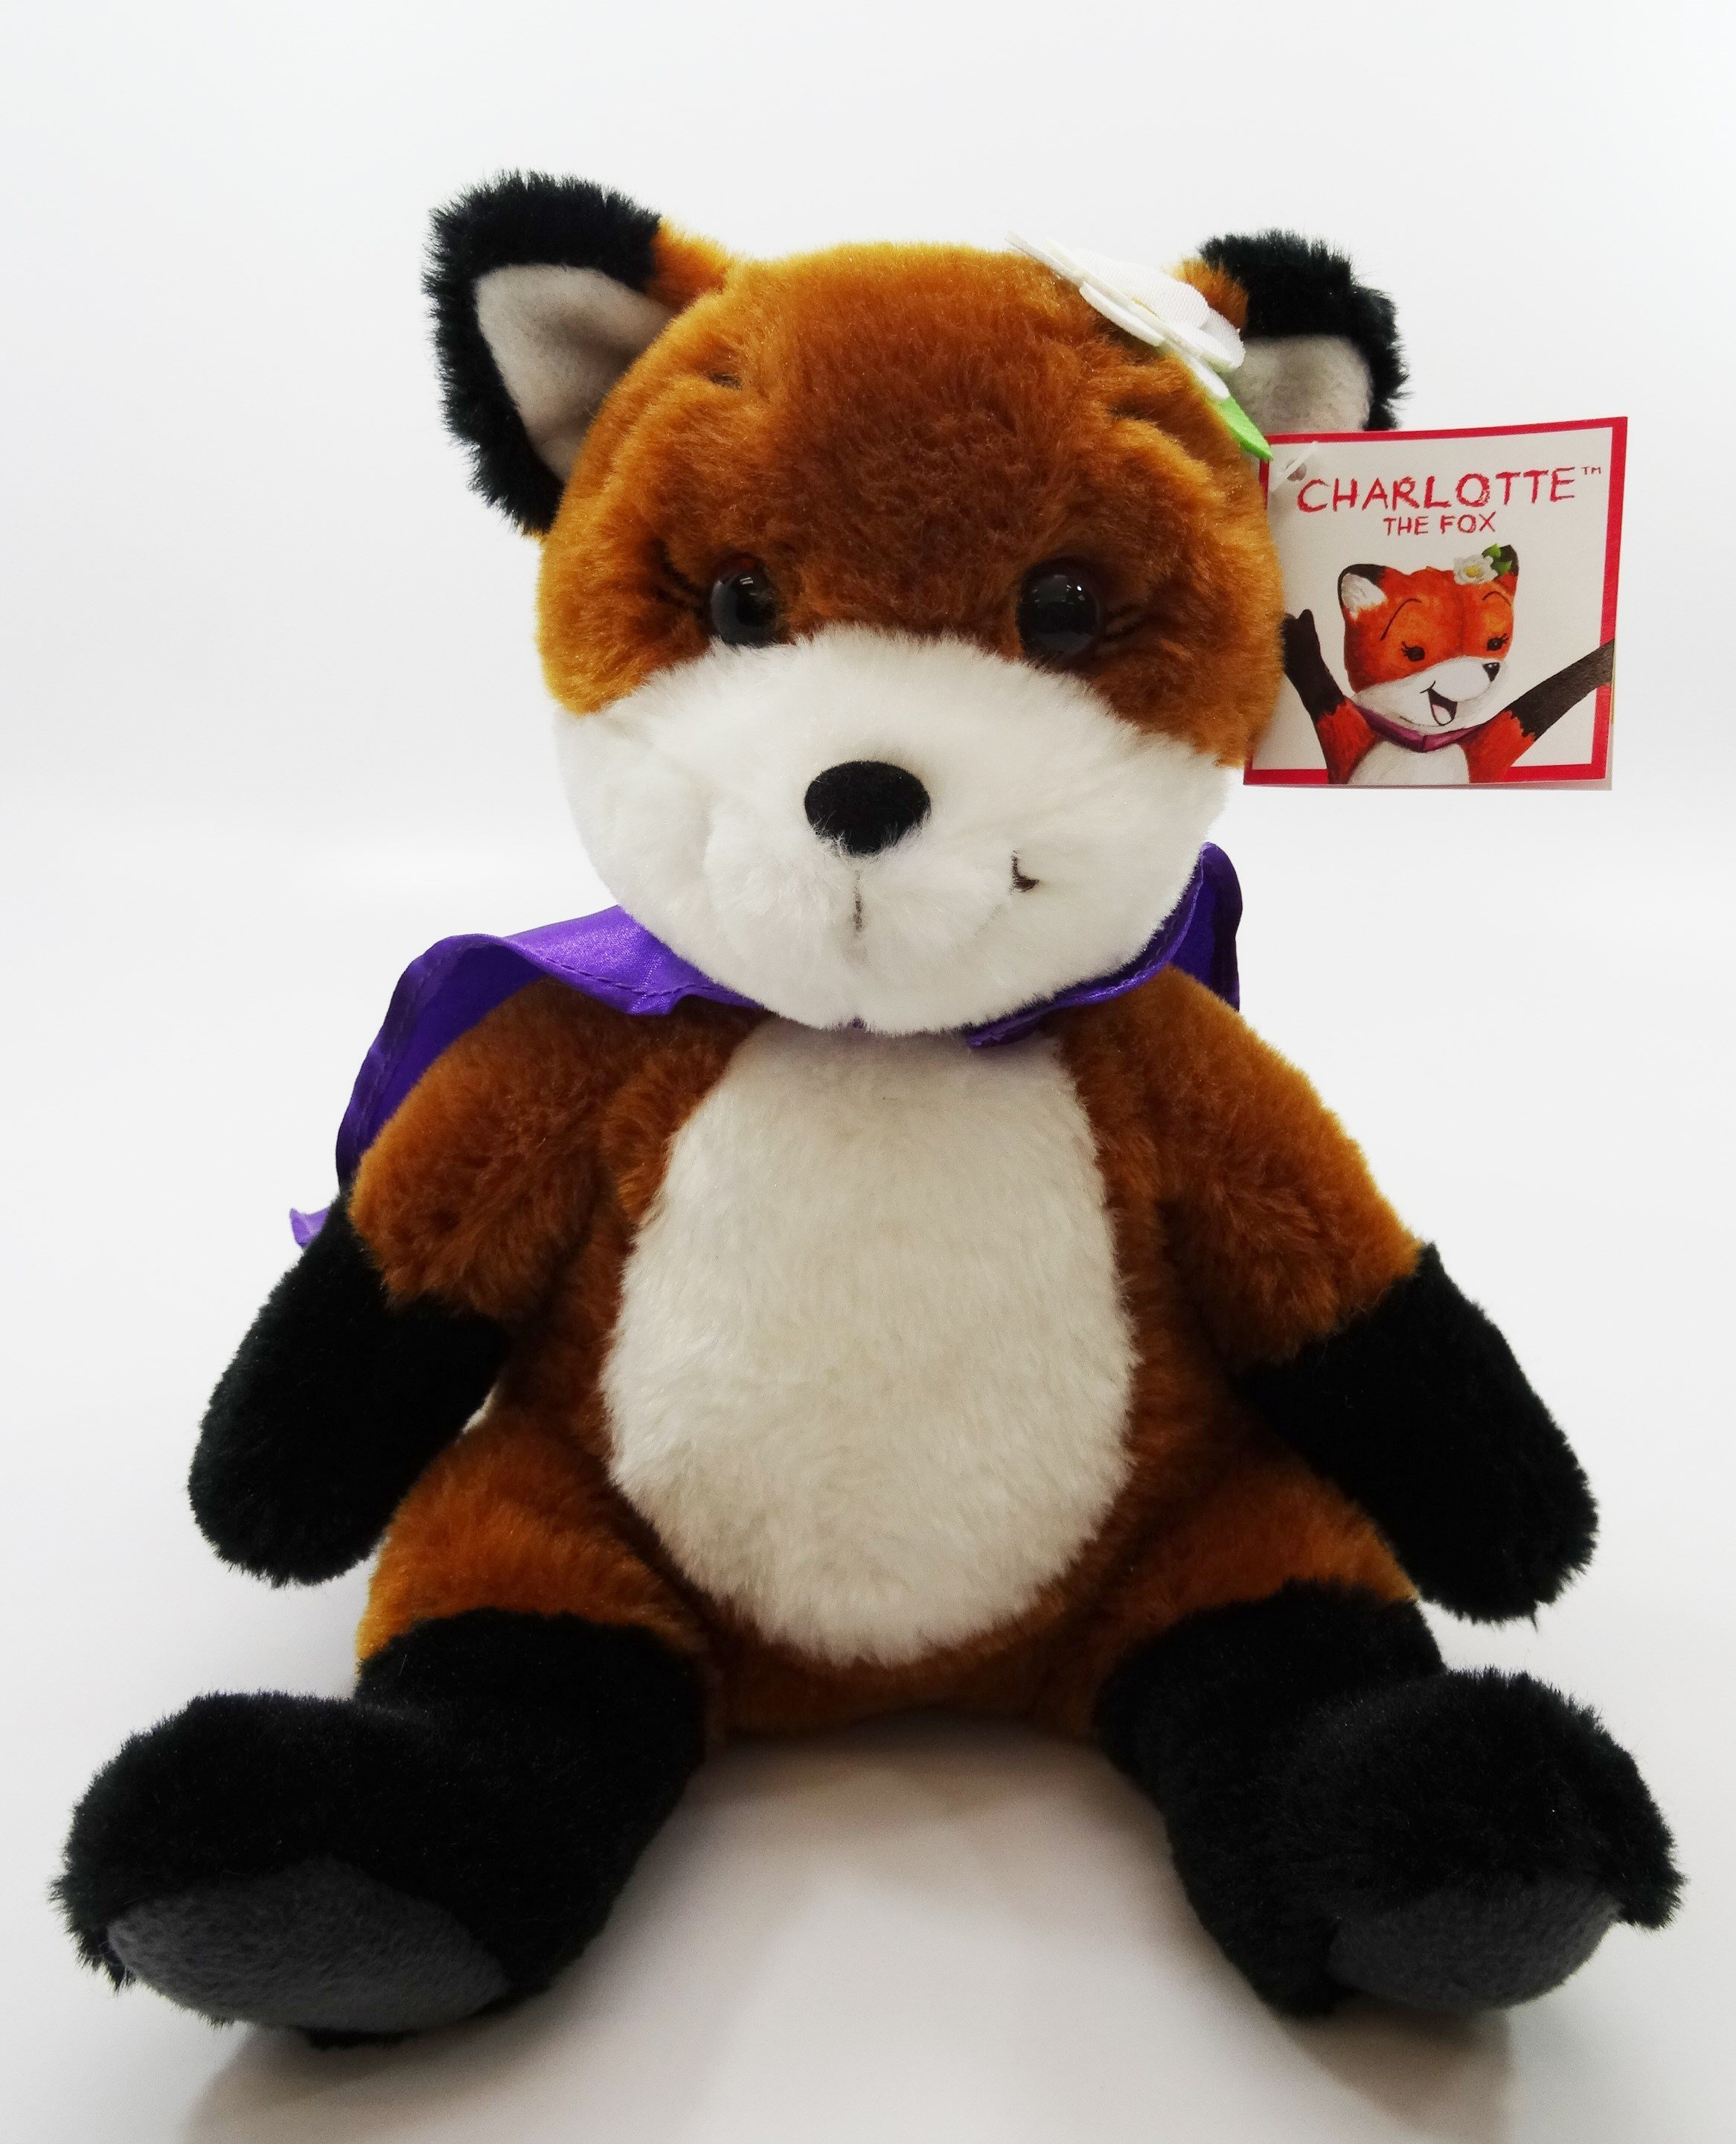 Charlotte the Fox (Photo courtesy Consumer Product Safety Commission)